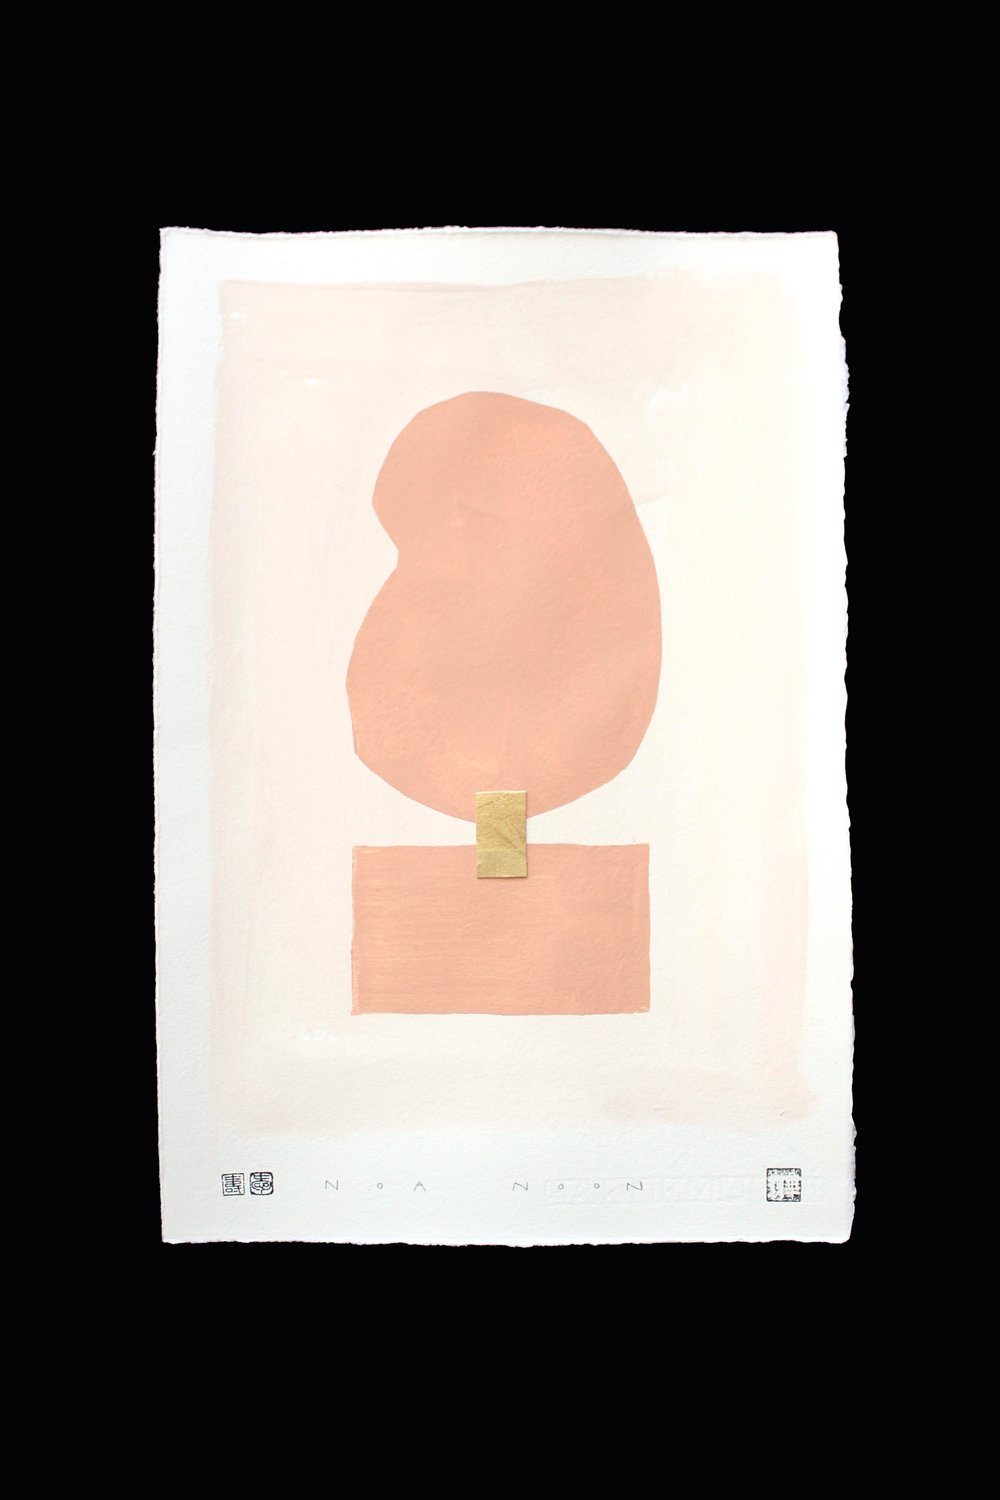 PAINTED PRINT - PAINTED PRINT ON HANDMADE PAPER WITH GOLD LEAF DETAIL AND PAINTED WITH PIGMENT PAINT.  SMALL SIZE 27 X 39 CM